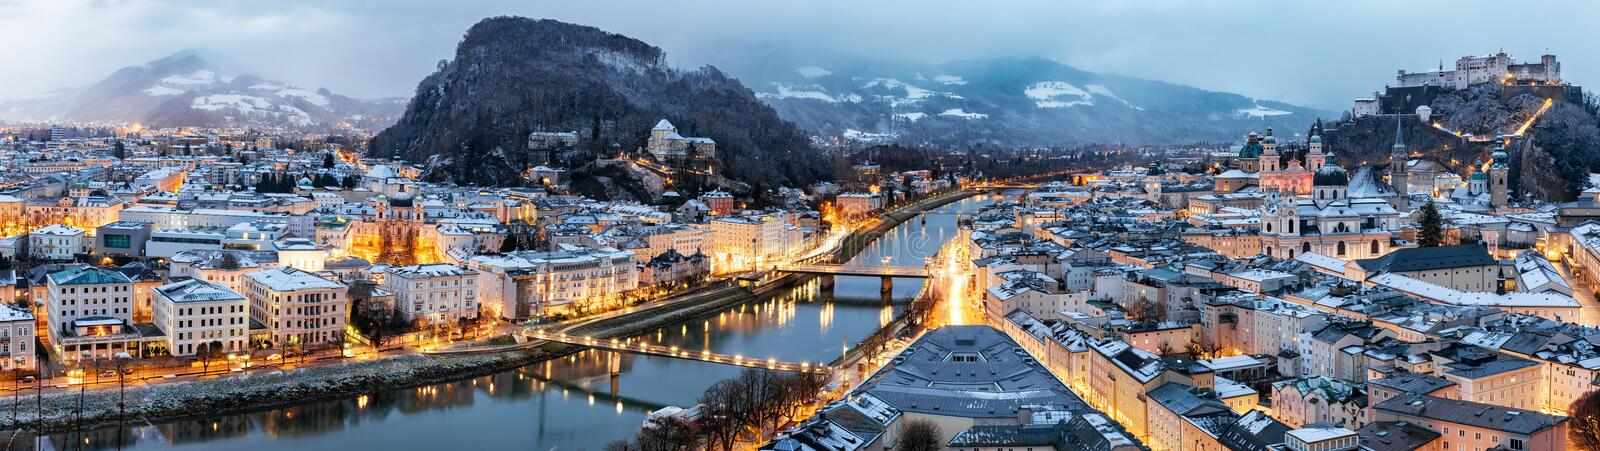 Panoramic view over Salzburg, Austria in winter time. Panoramic view over Salzburg, Austria, in the evening with city lights in winter time stock photo